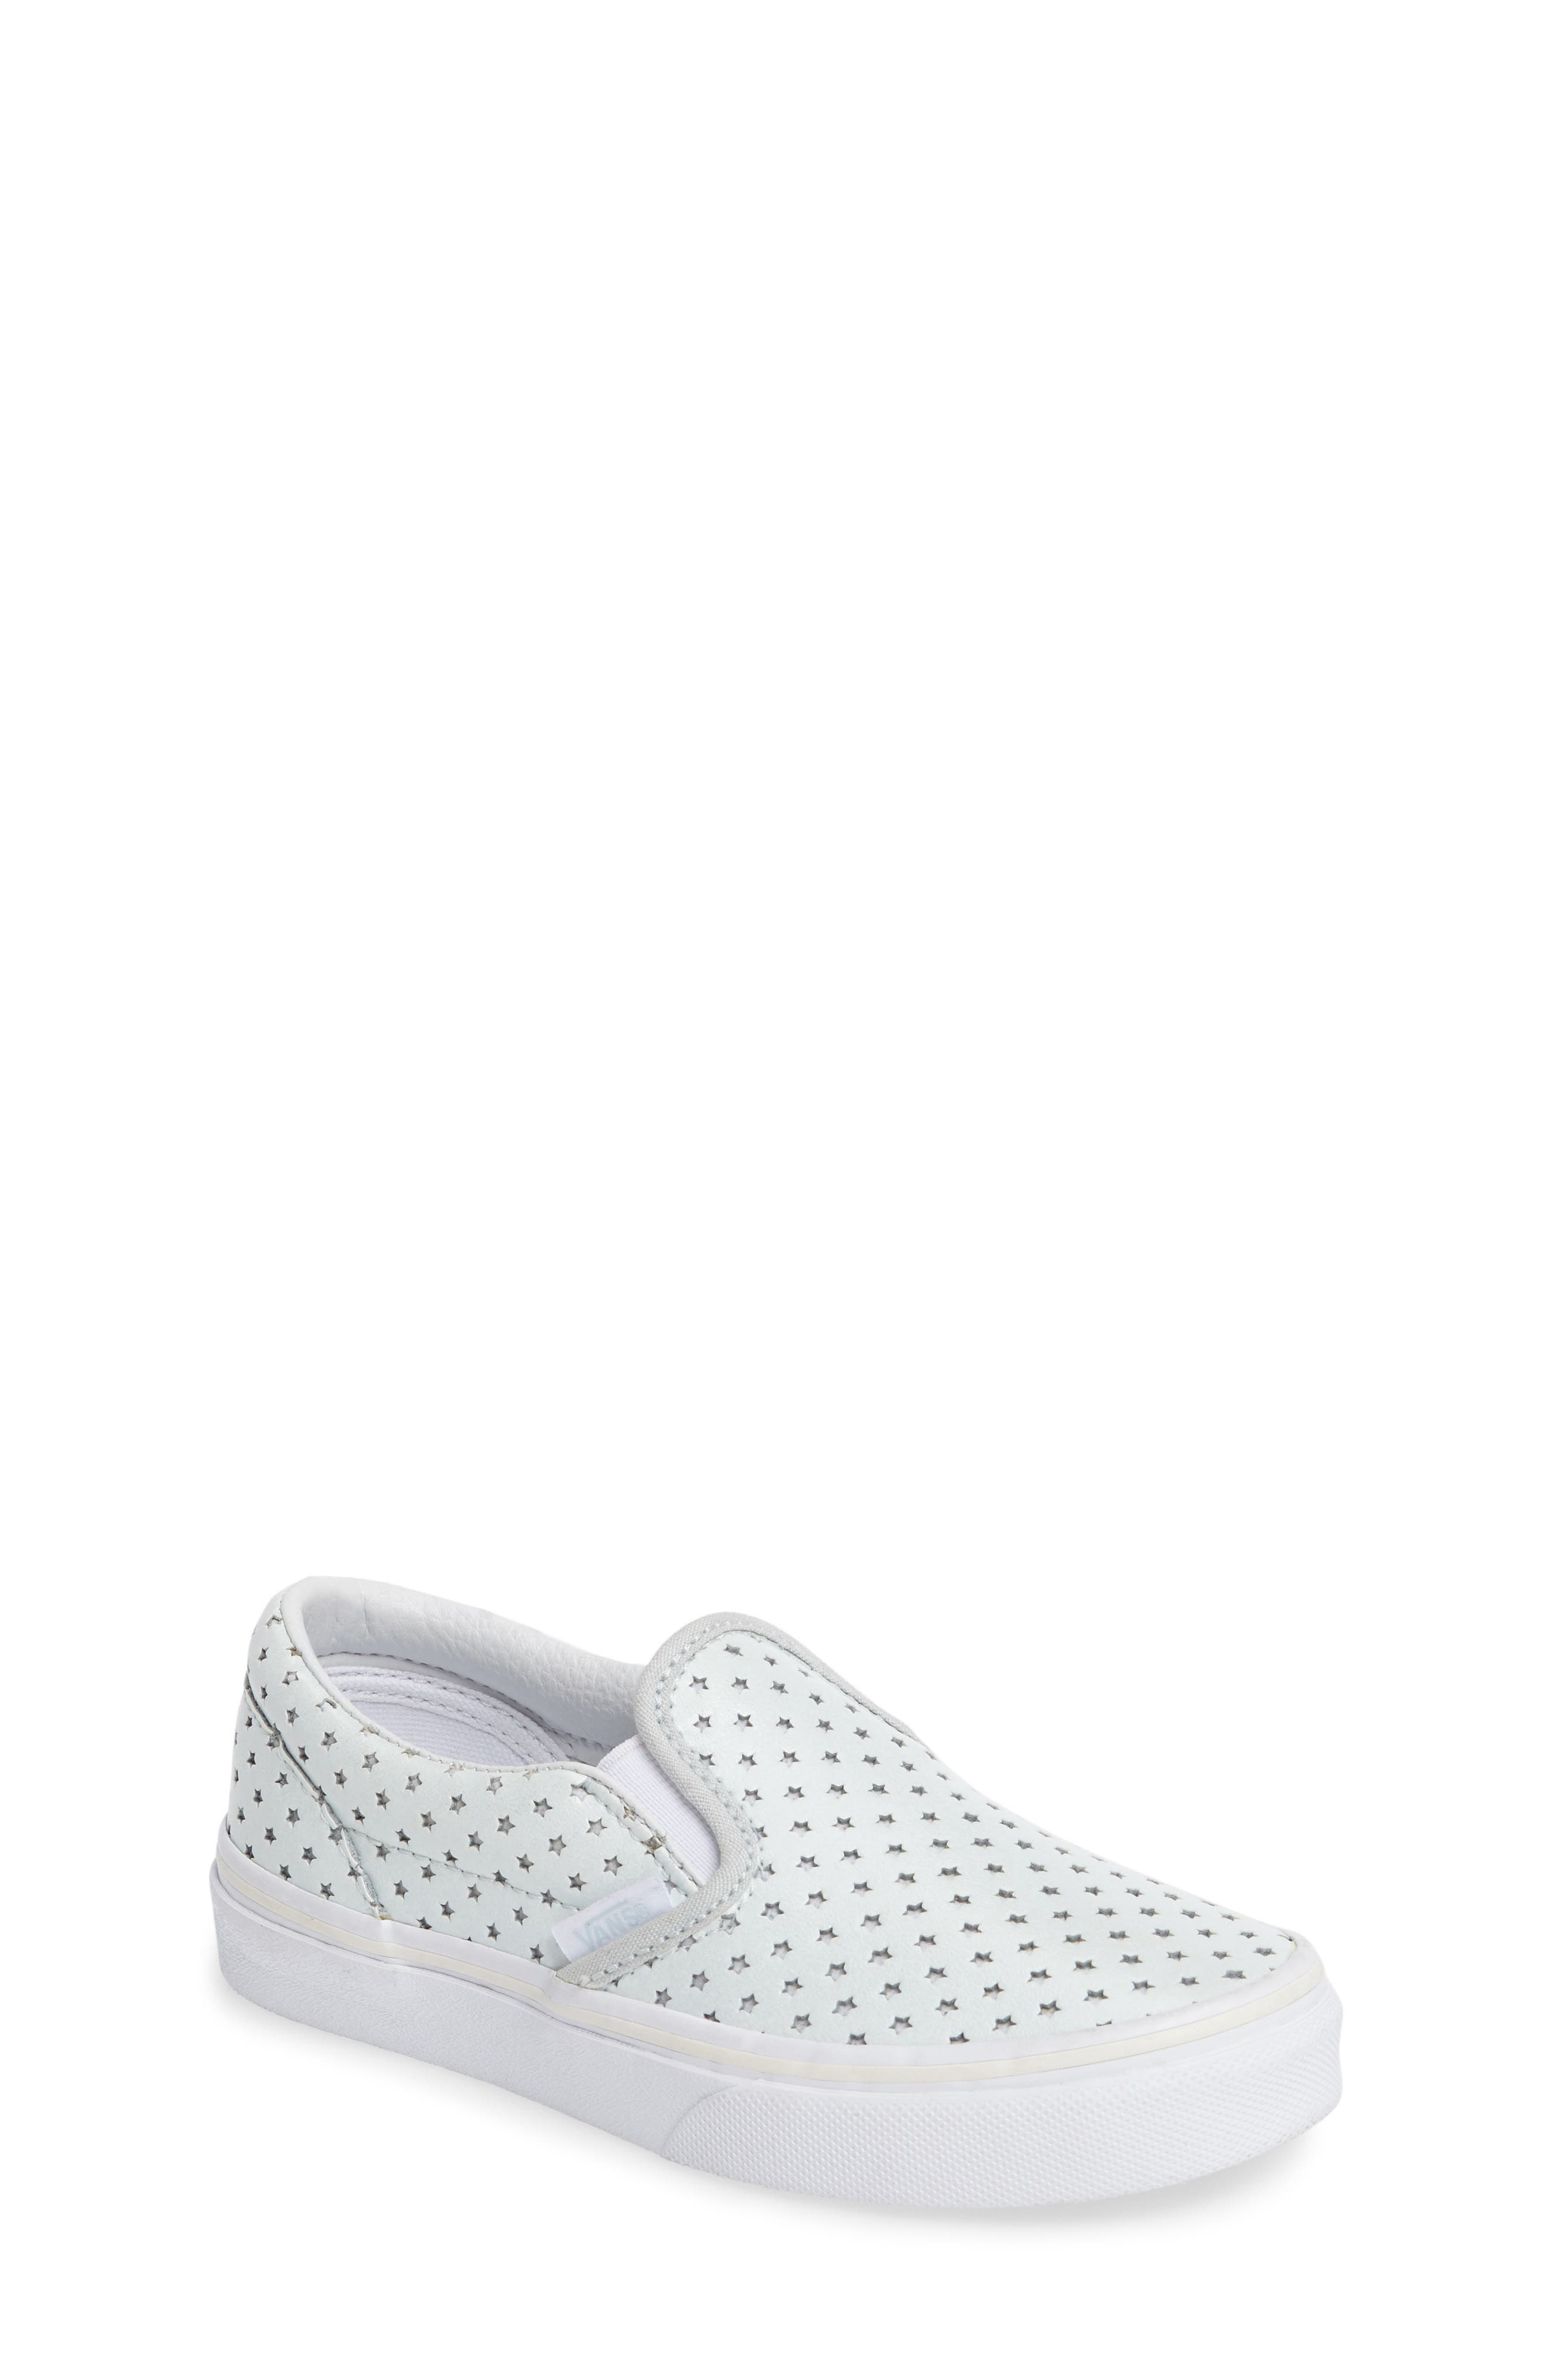 Classic Perforated Slip-On Sneaker,                         Main,                         color, Stars Pearlized Leather